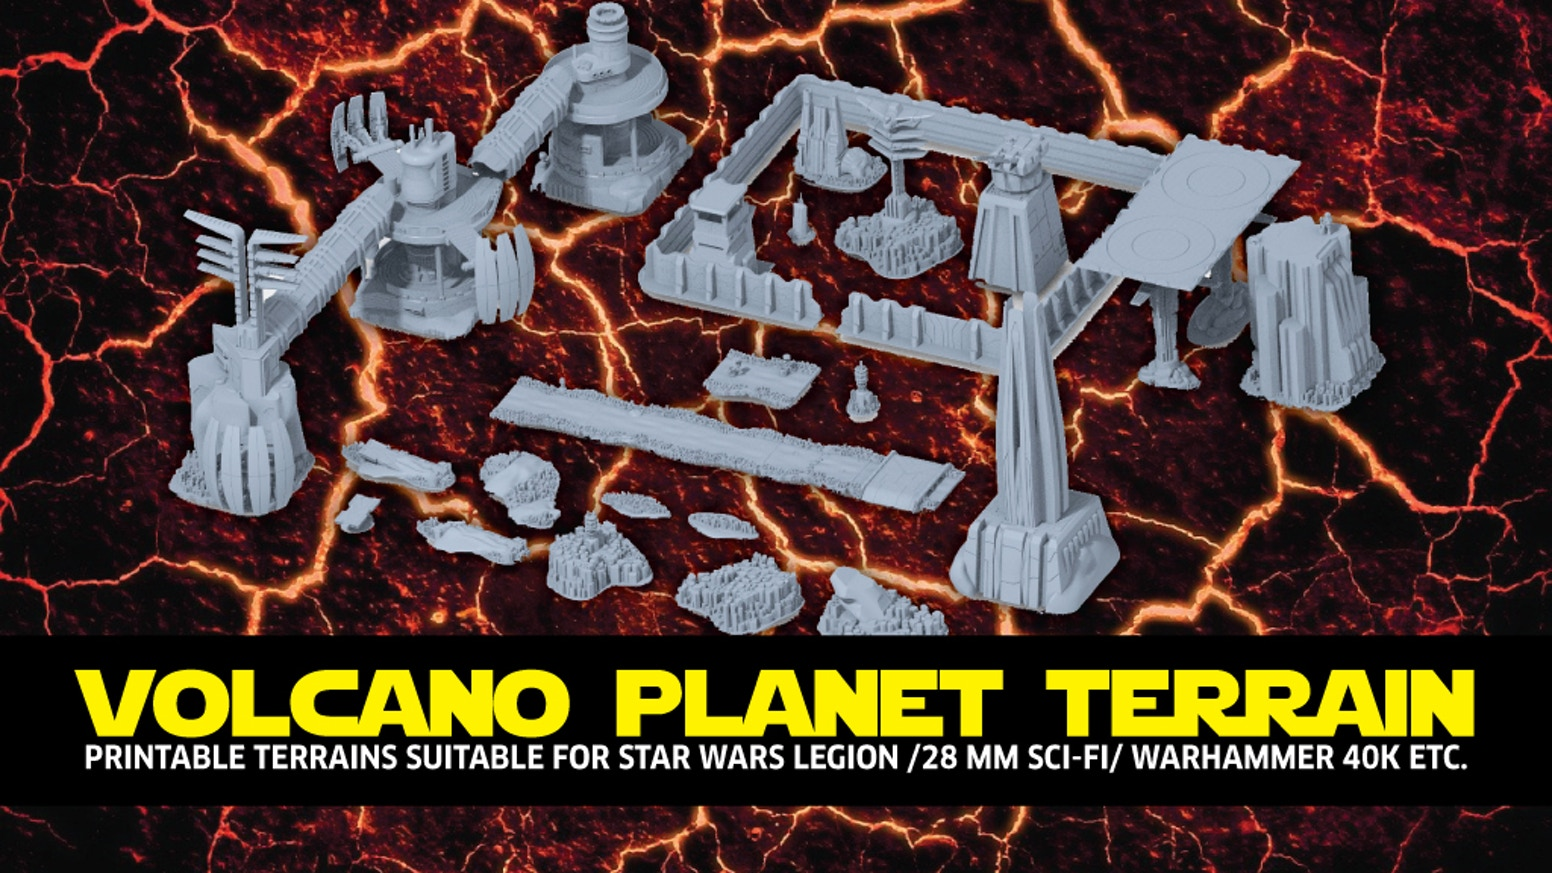 +100 STL files to print terrain suitable for Star Wars Legion /28 mm Sci-FI/ Warhammer 40K etc.